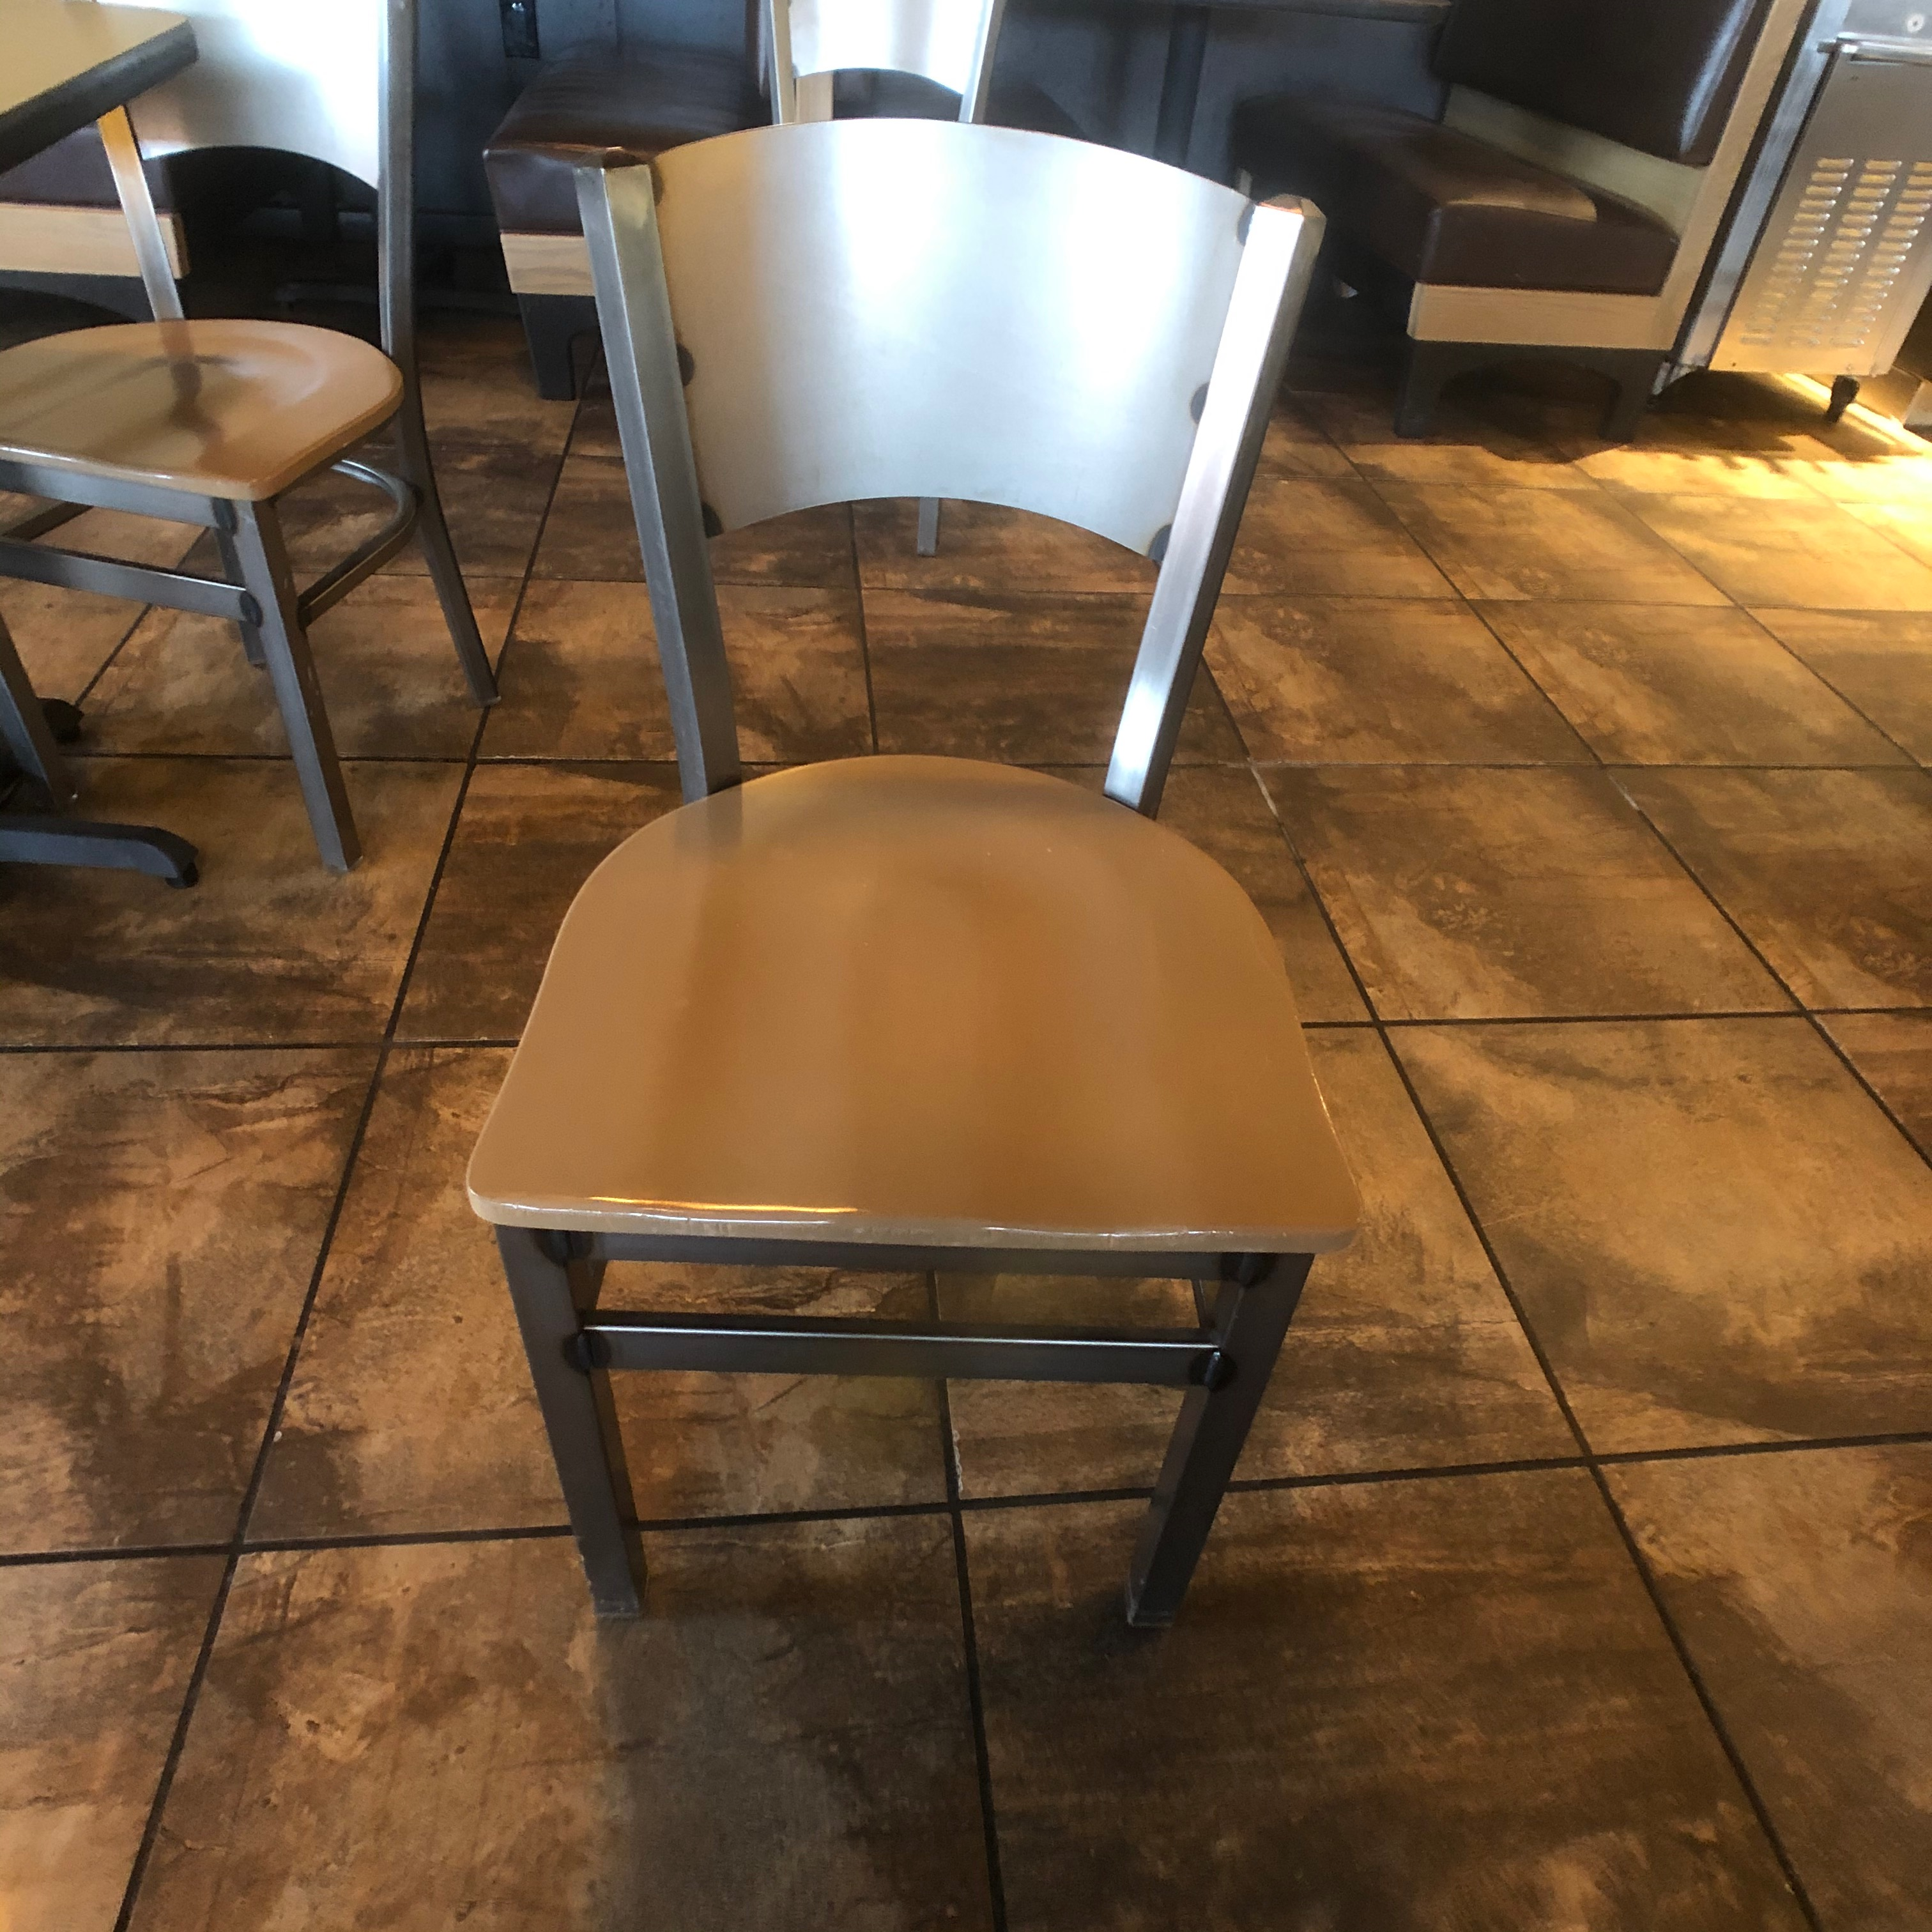 "(6) 4-Person Tables with (24) Walsh Simmons Seating Chairs, Approx. 44"" L x 28"" W - Image 4 of 5"